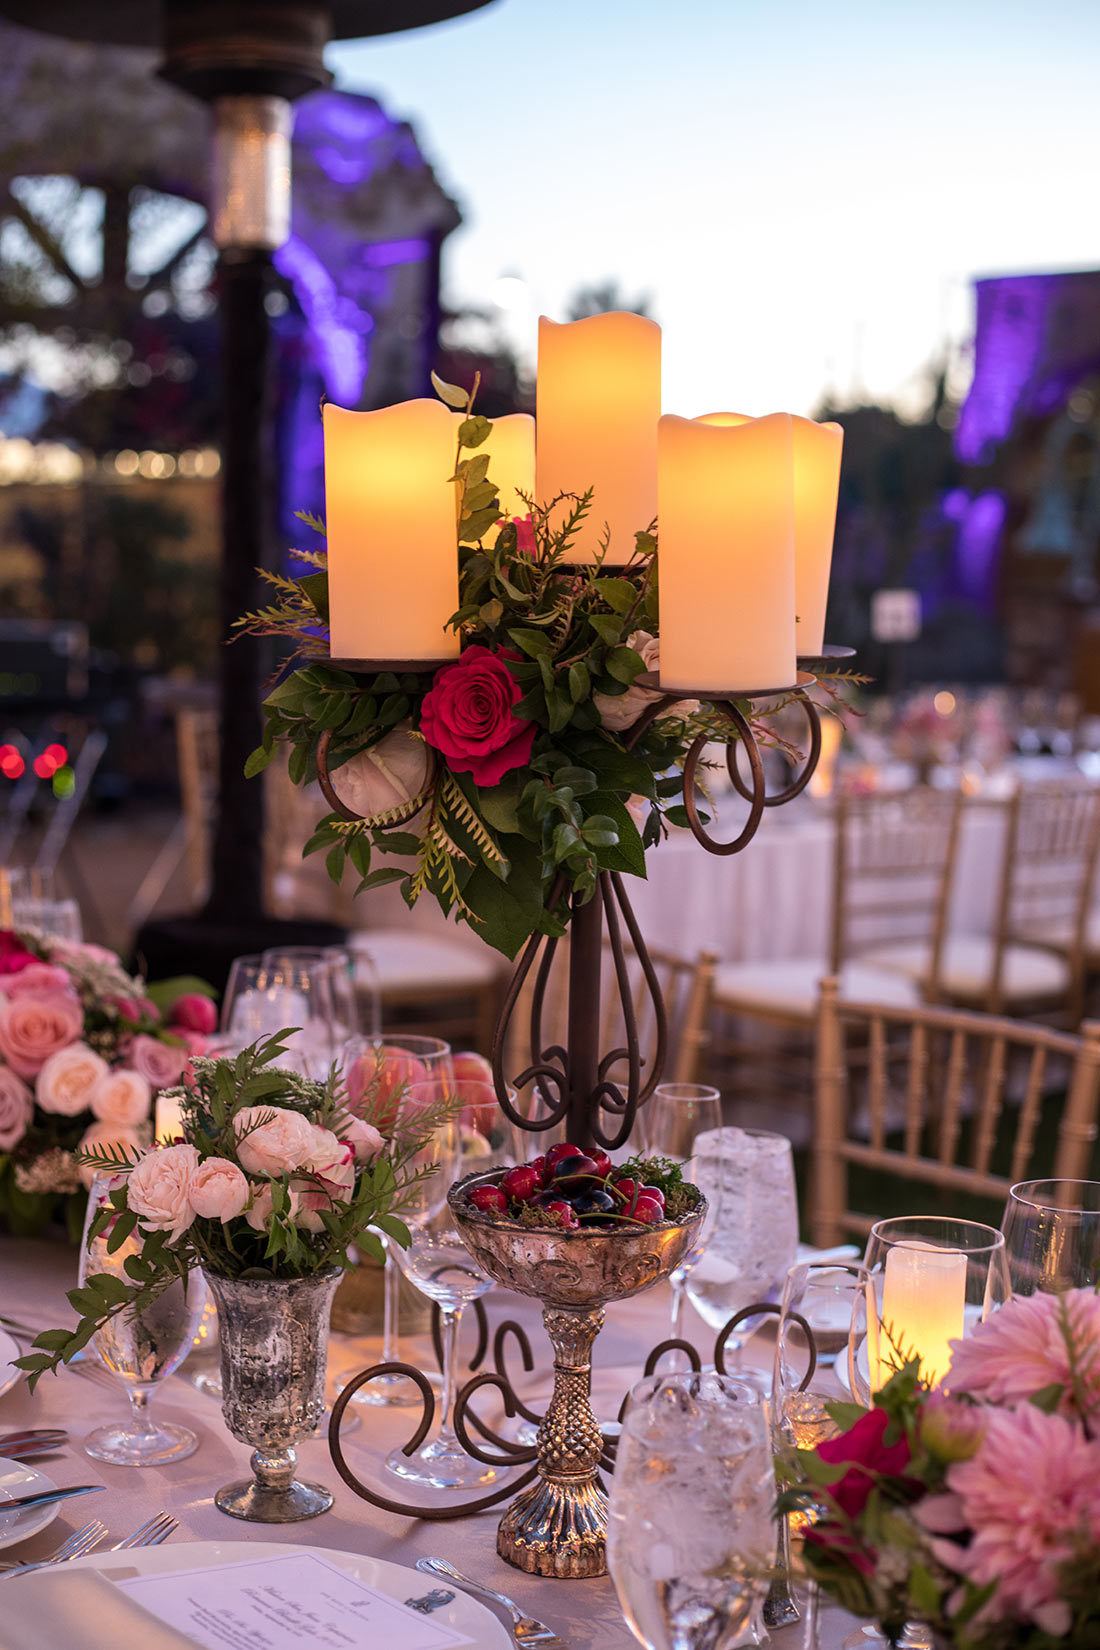 An image of the dining piece set with candles and red roses at the Mission San Juan Capistrano Gala